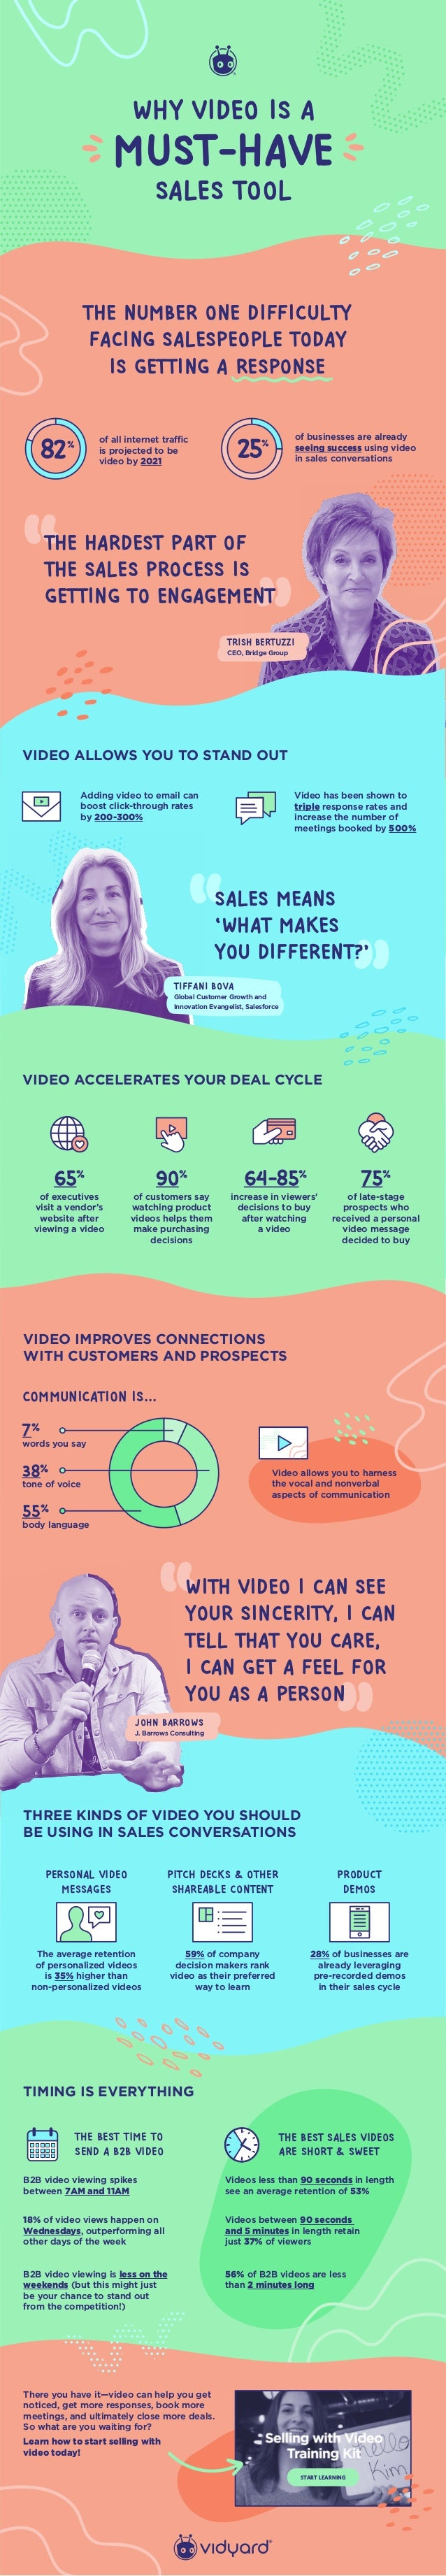 THE NUMBER ONE DIFFICULTY FACING SALESPEOPLE TODAY IS GETTING A RESPONSE Adding video to email can boost click-through rat...